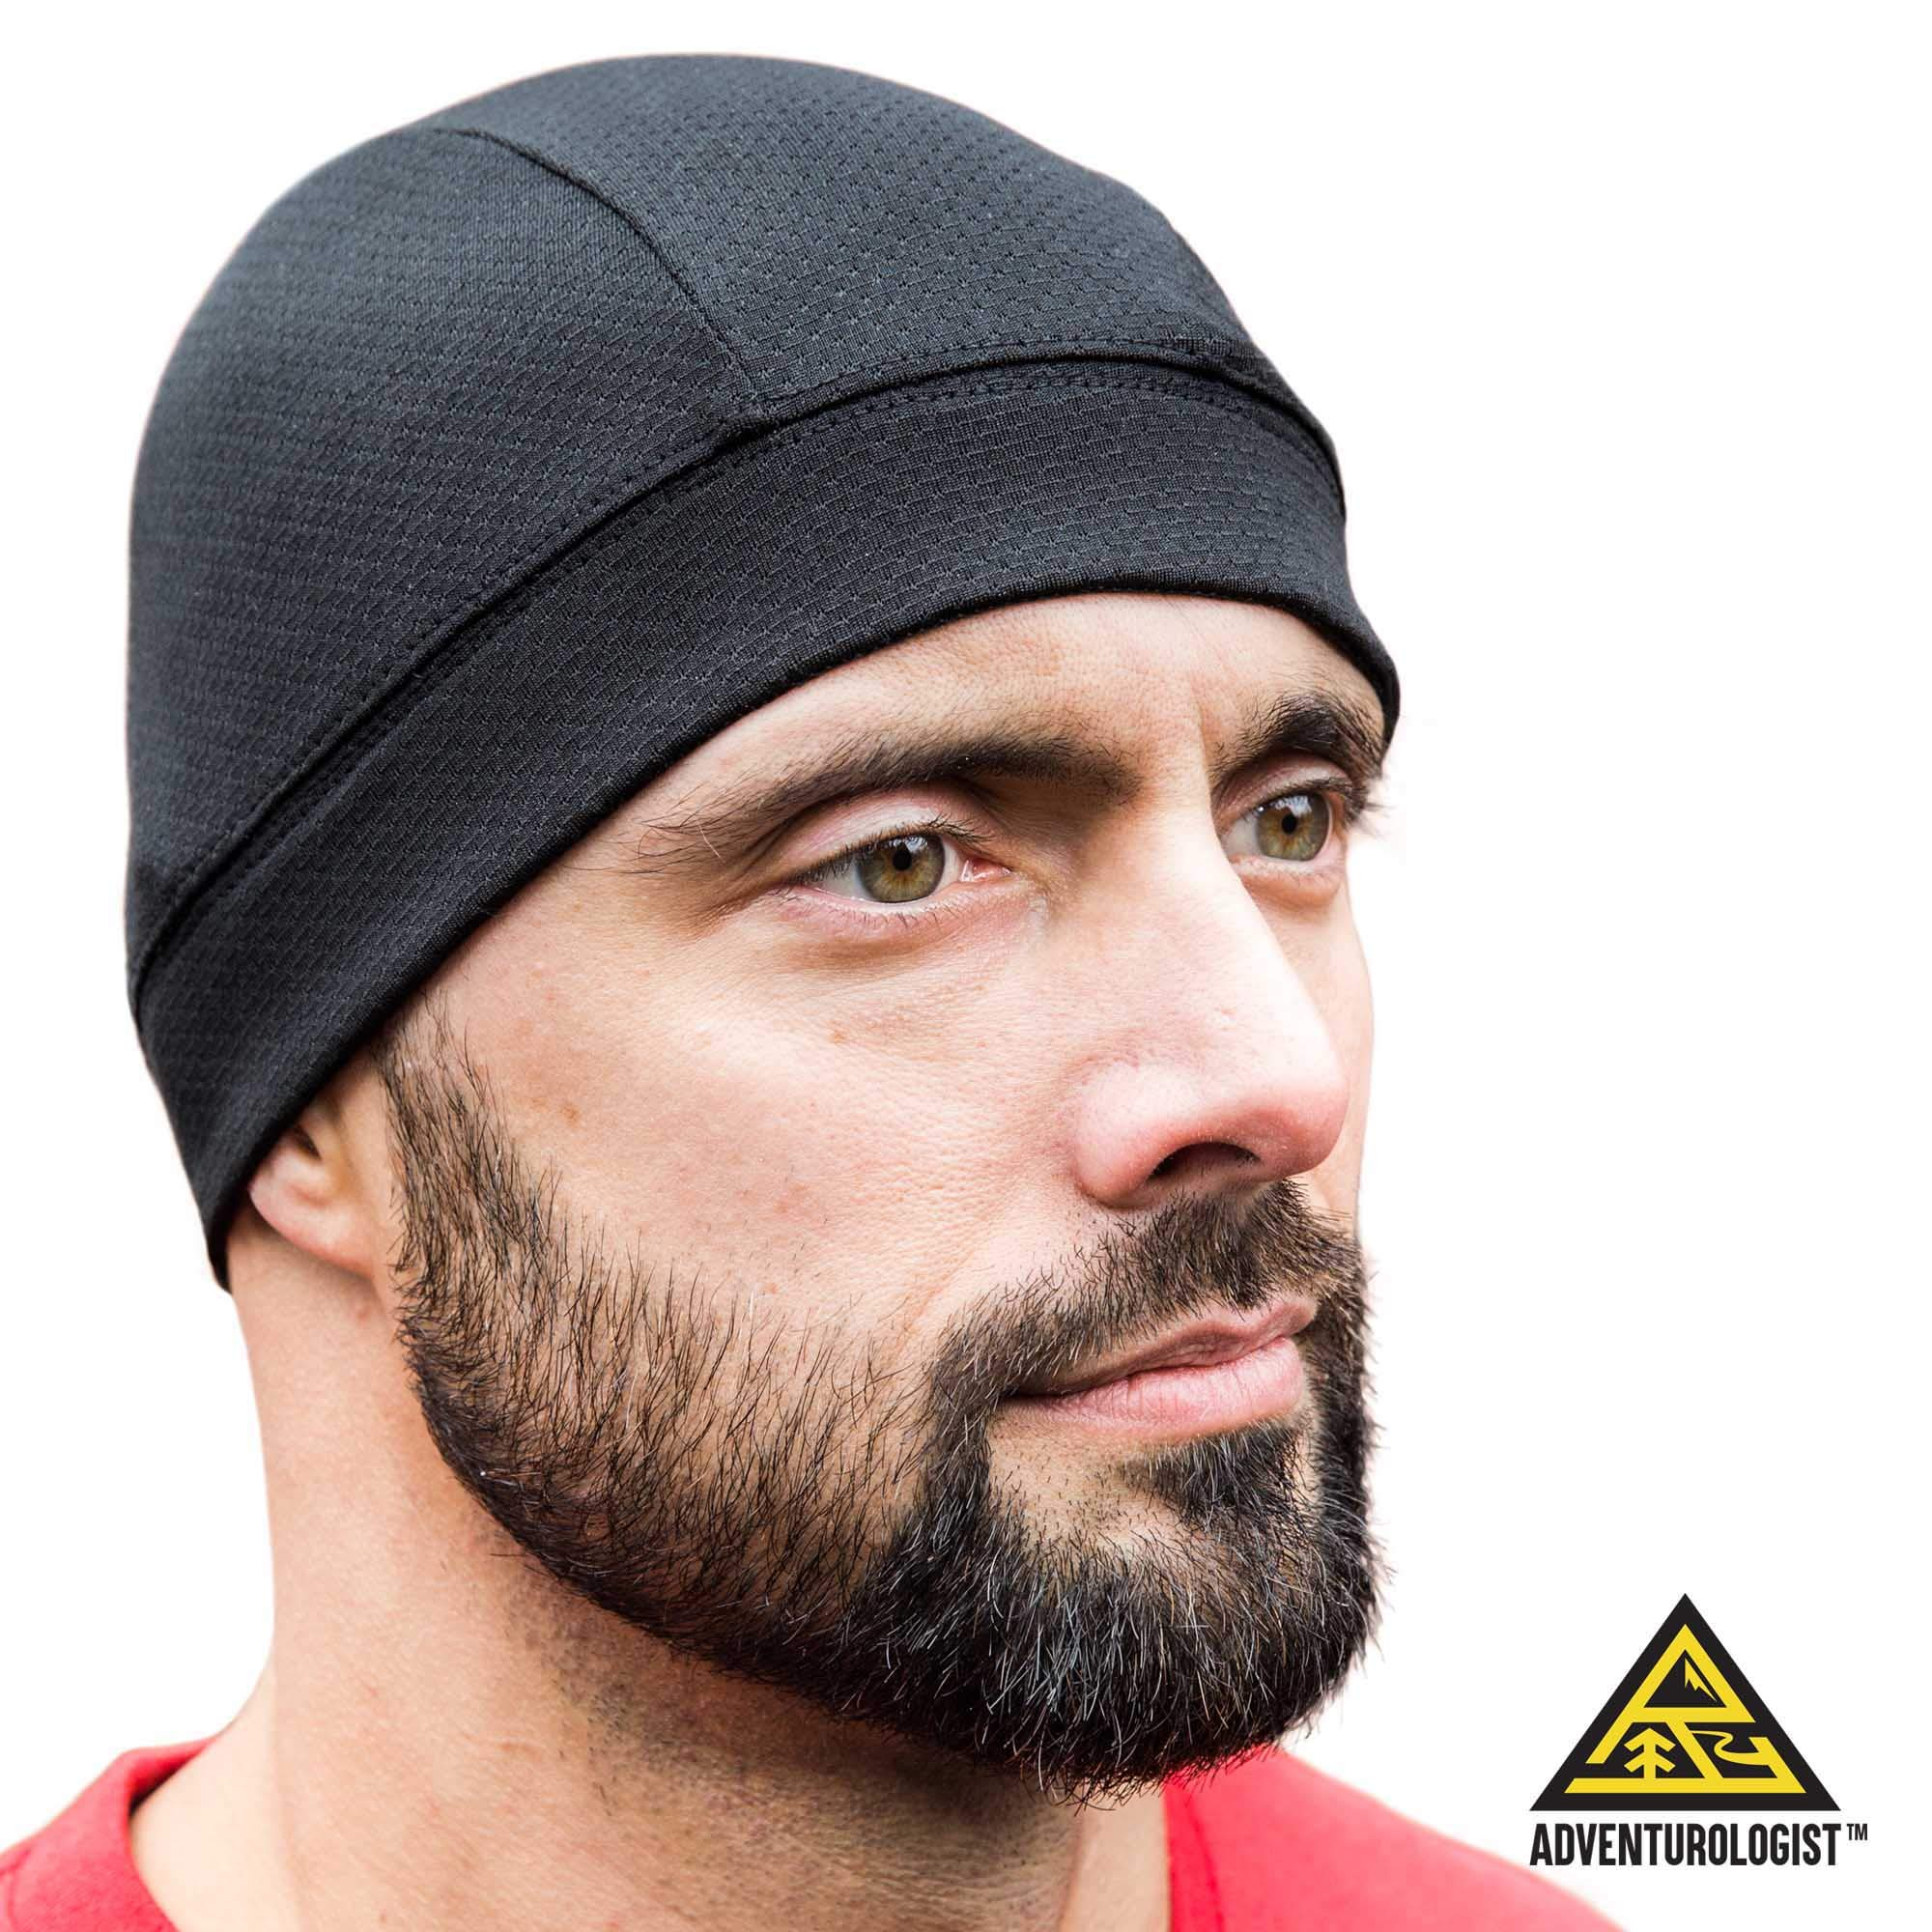 SKULL CAP [BLACK 2 PACK] , Best for Men and Women as a Helmet Liner, Thermal Cycling Beanie, Running Hat, Do-Rags and Workout Caps, Perfect under Motorcycle Helmets, Covers Ears and Wicks Moisture